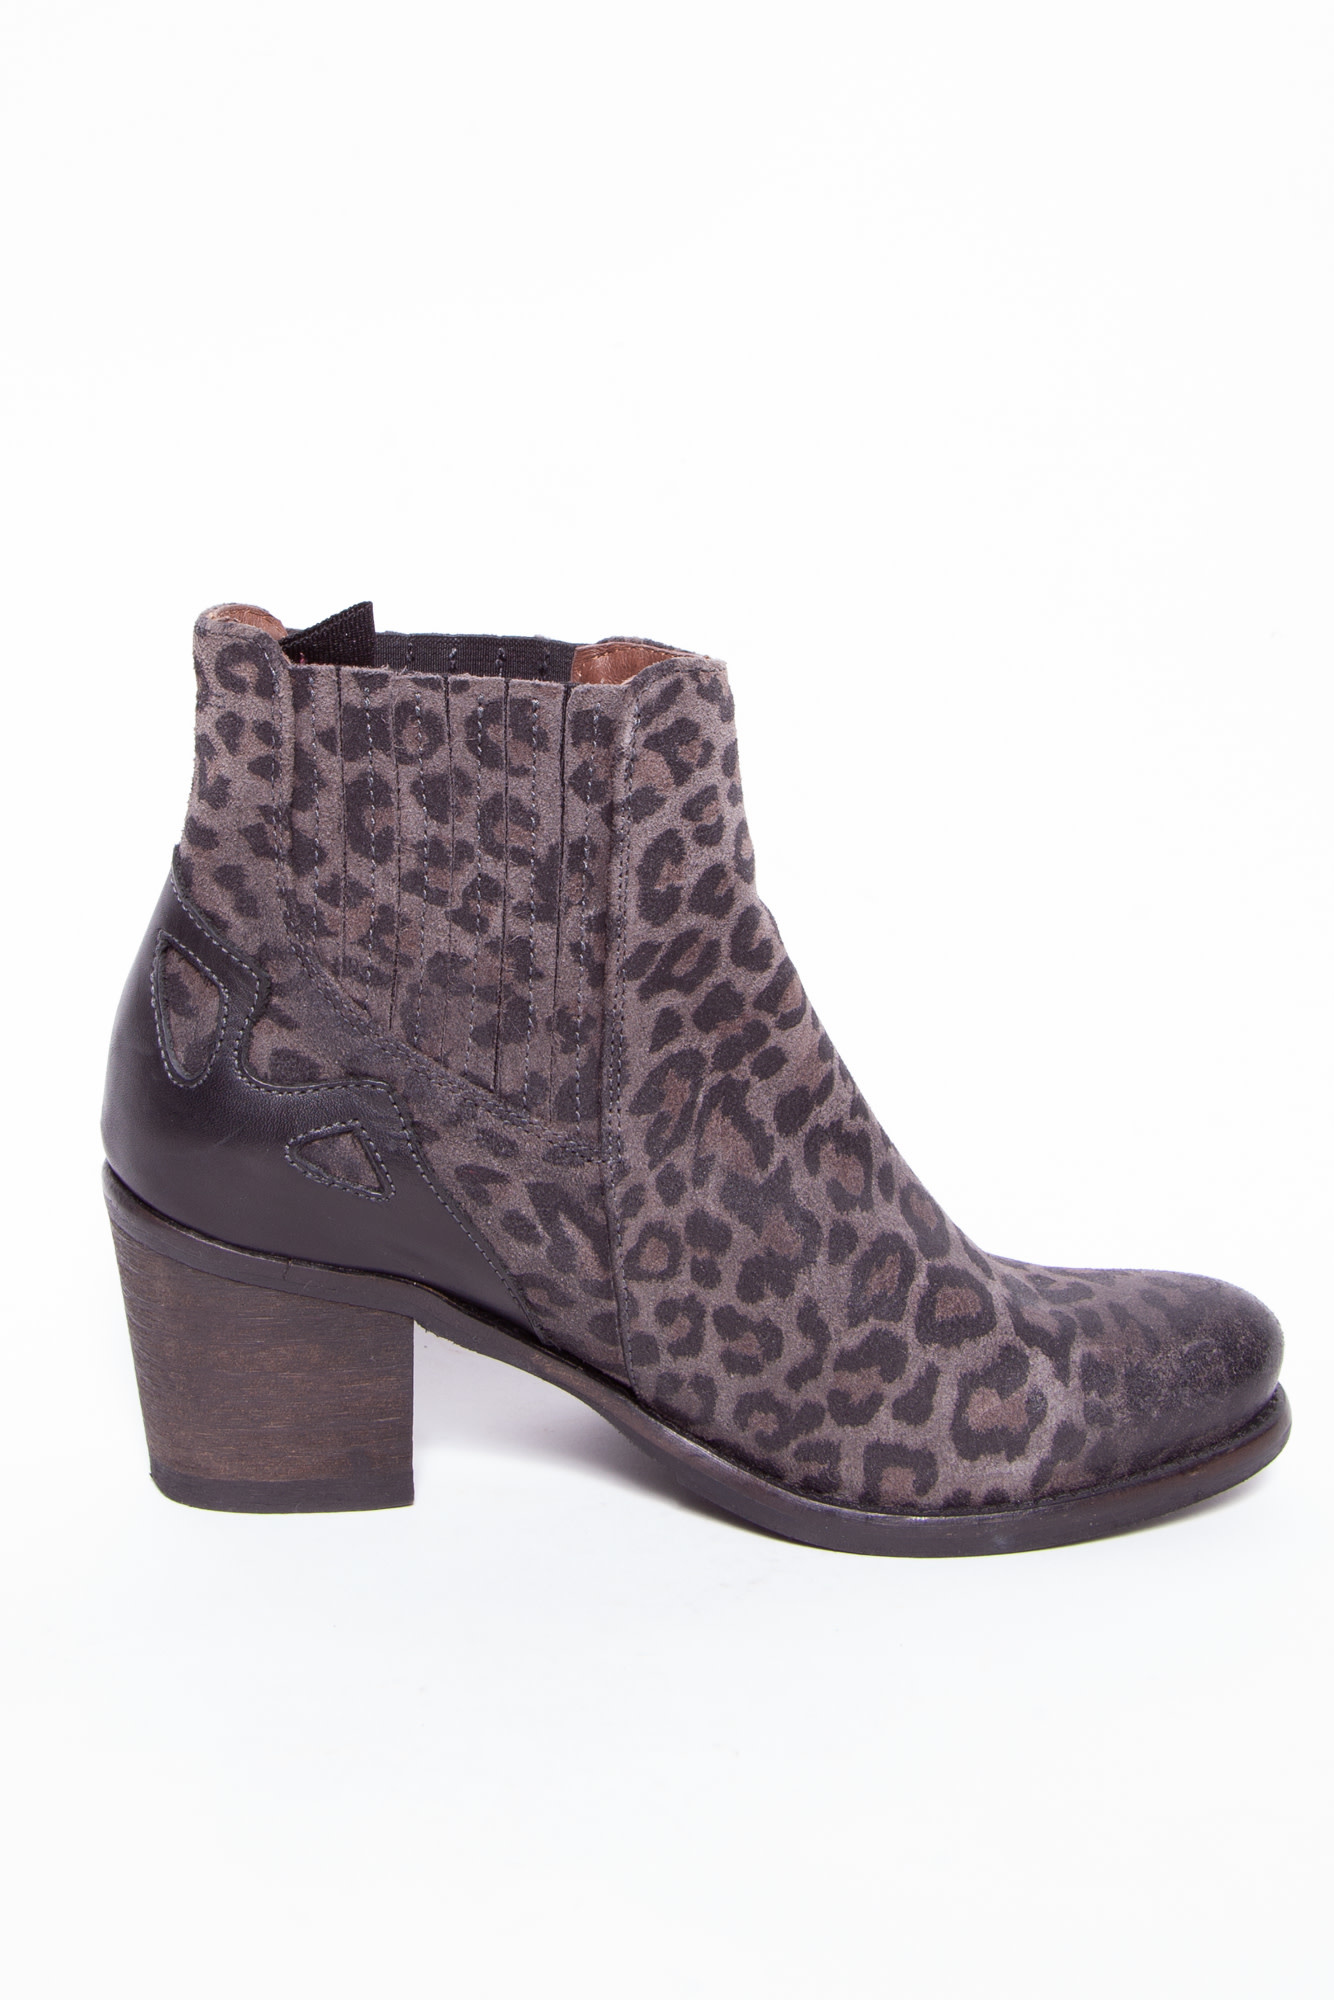 Coqueterra GRAY AND BLACK LEOPARD PRINT ANKLE BOOTS